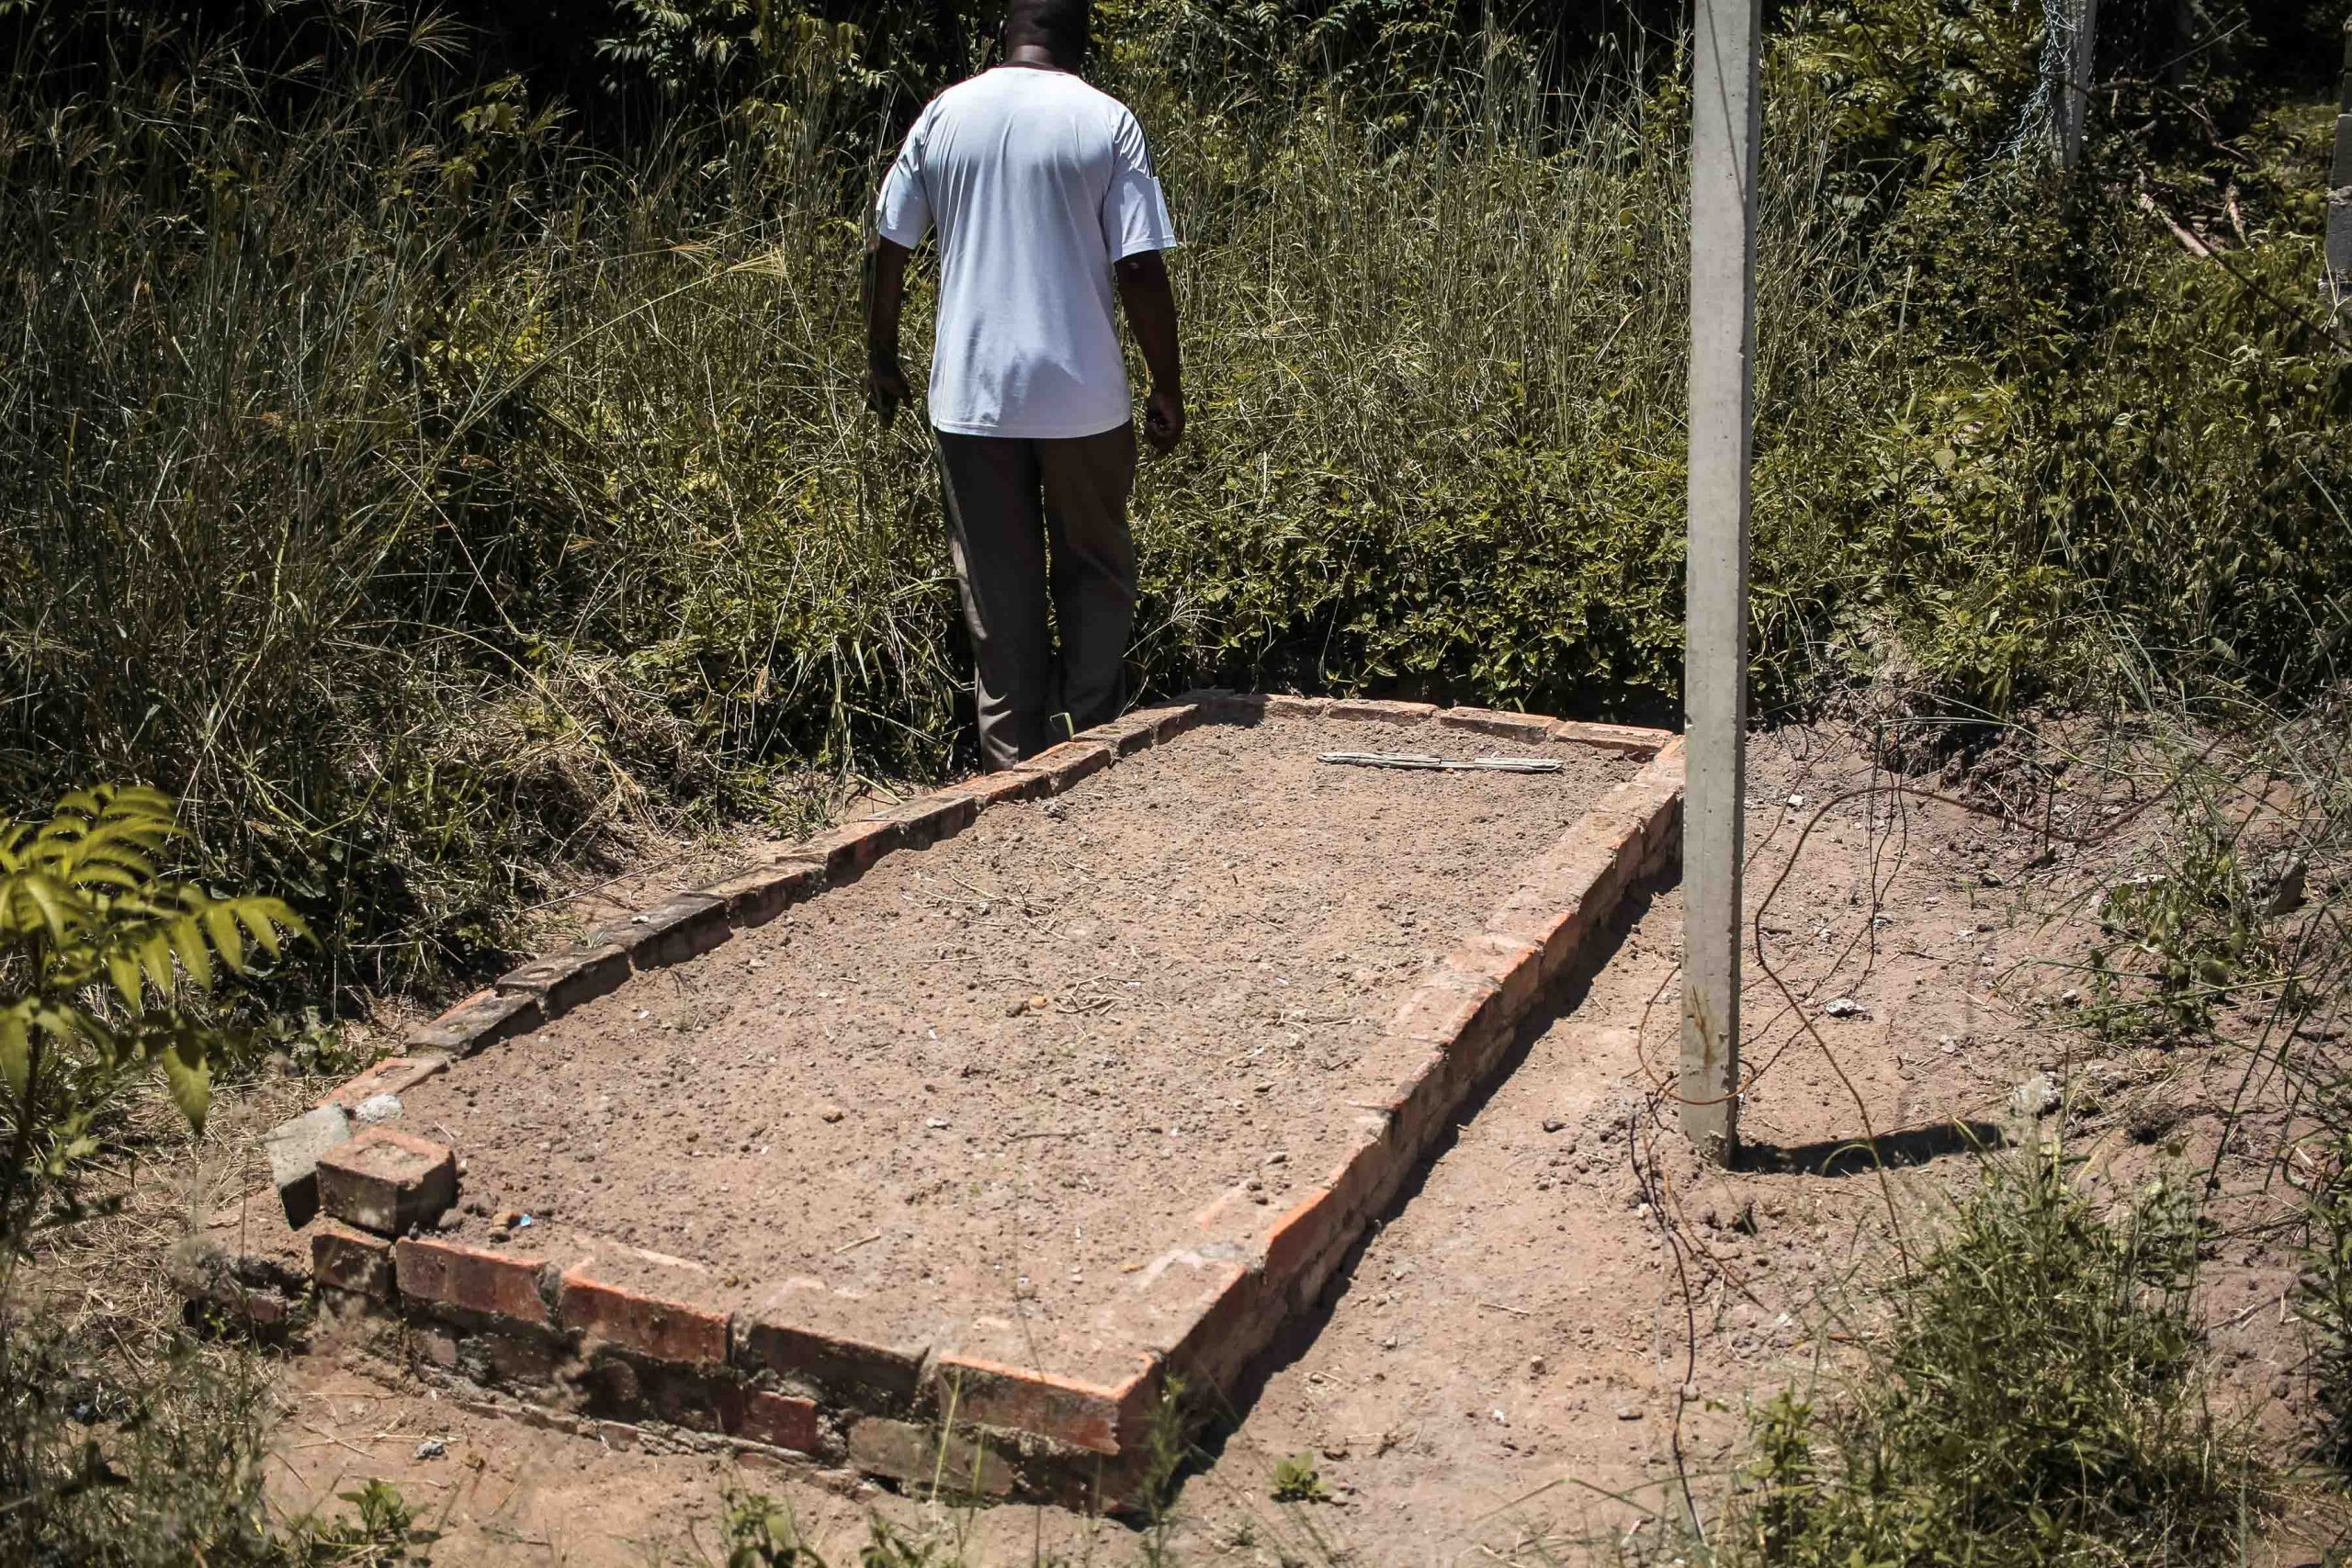 16 January 2020: An unmarked grave behind the primary school that Makhanya says belongs to a member of his family.